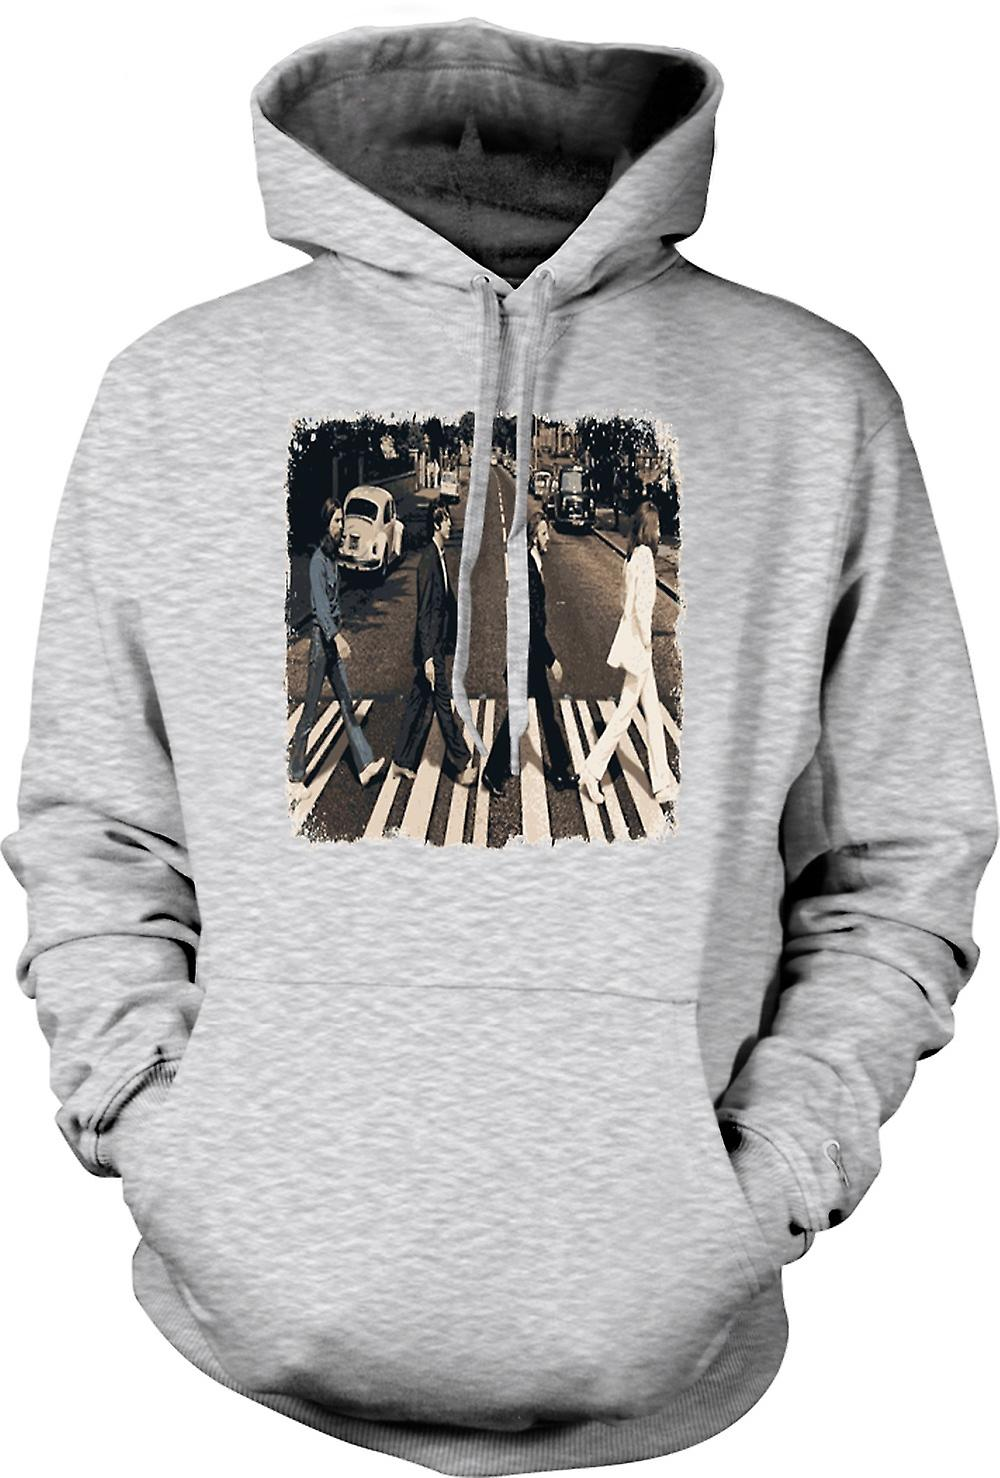 Mens Hoodie - Beatles - Abbey Road - Album Art